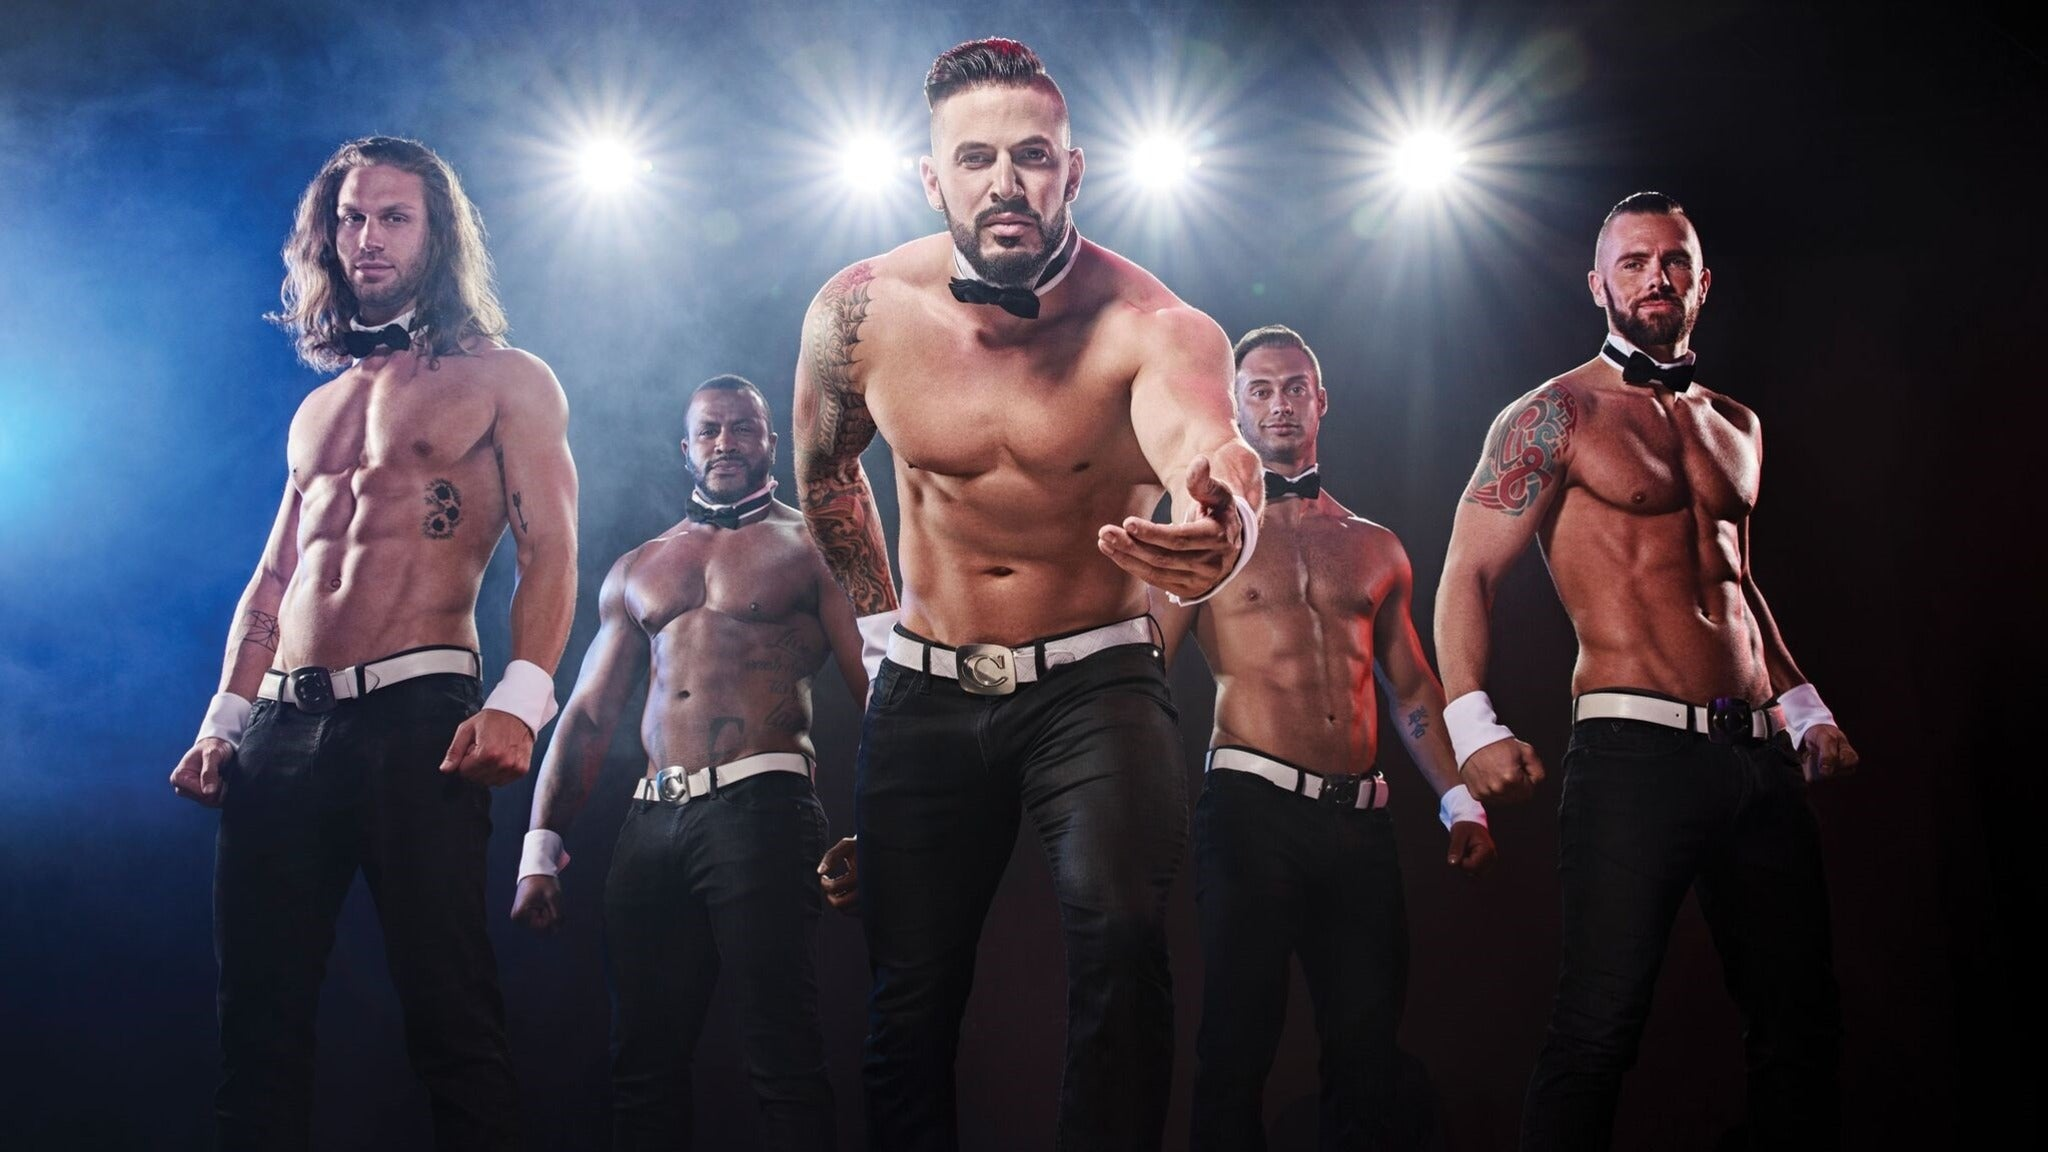 Chippendales at Belterra Casino Resort and Spa